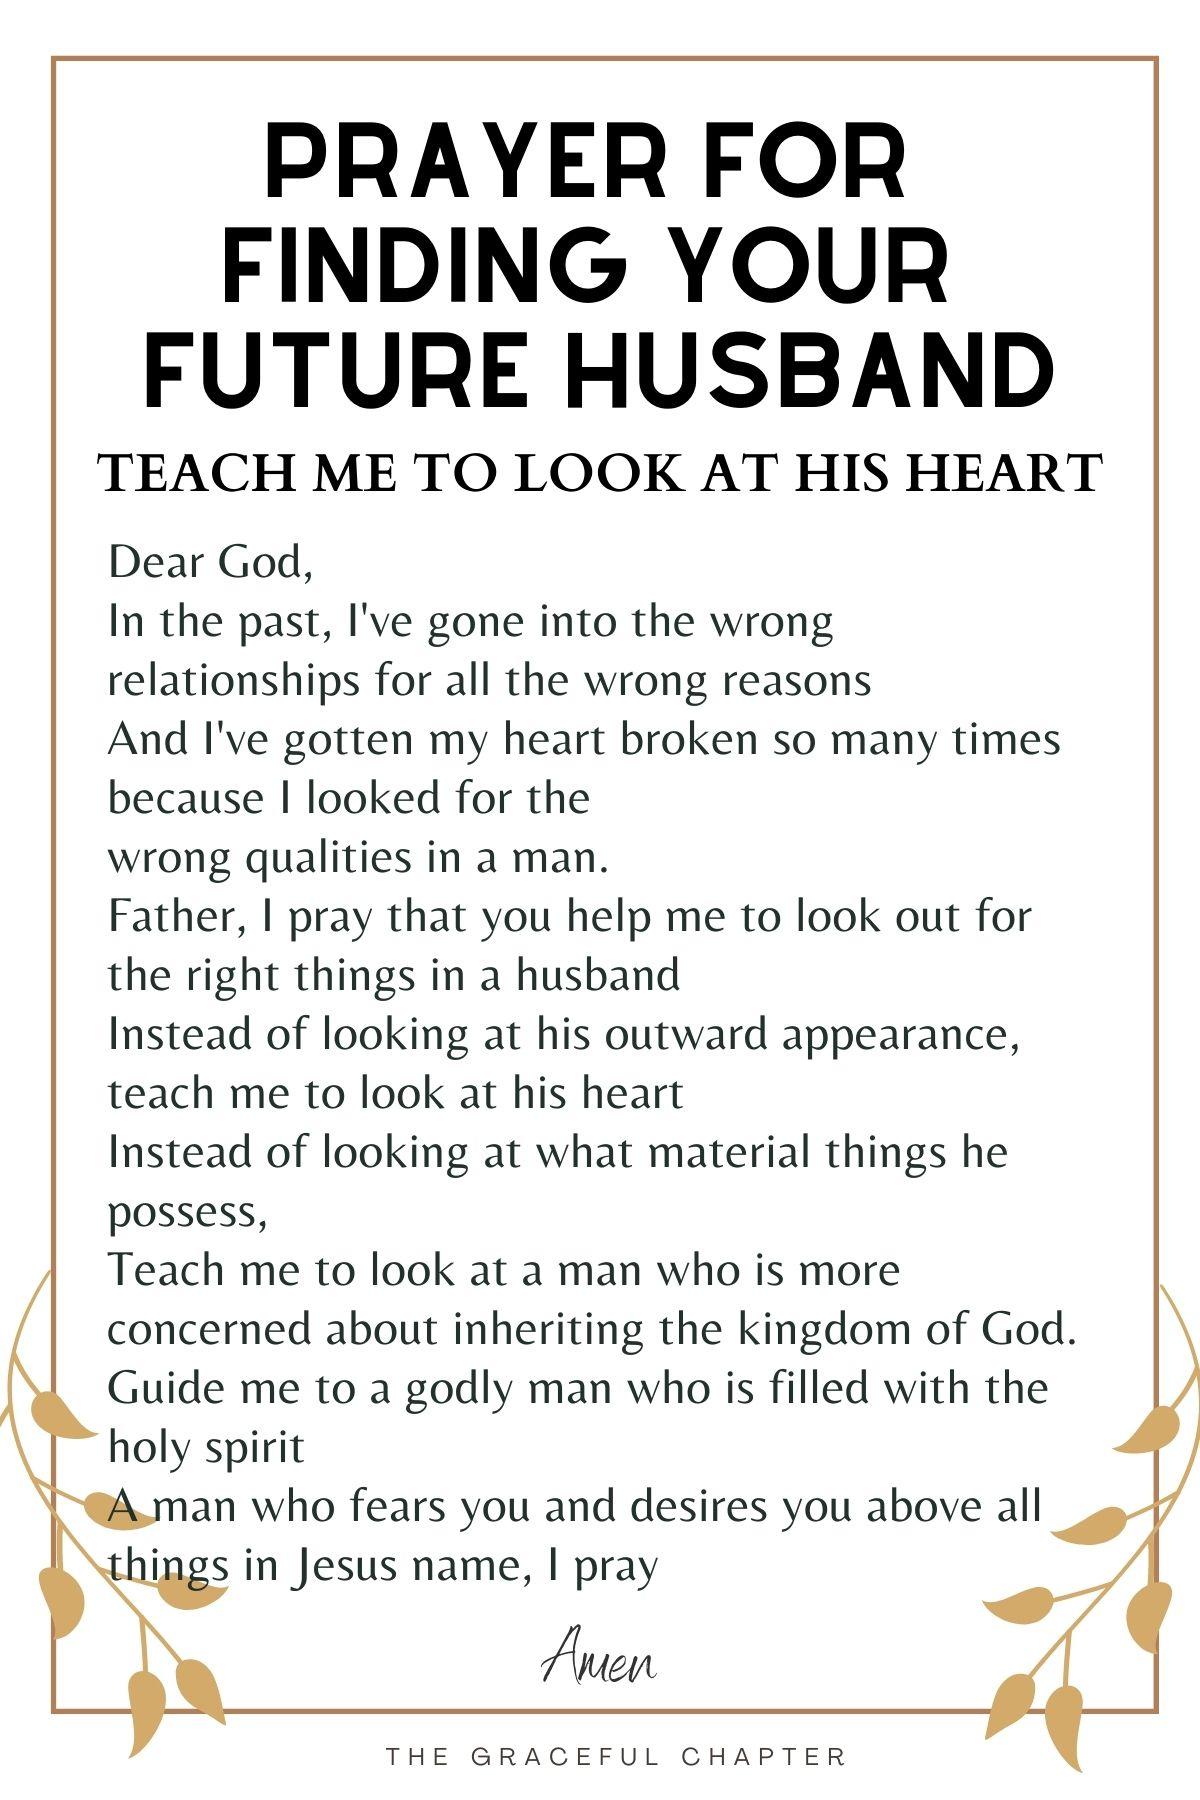 Prayer for finding a good husband - Teach me to look at his heart